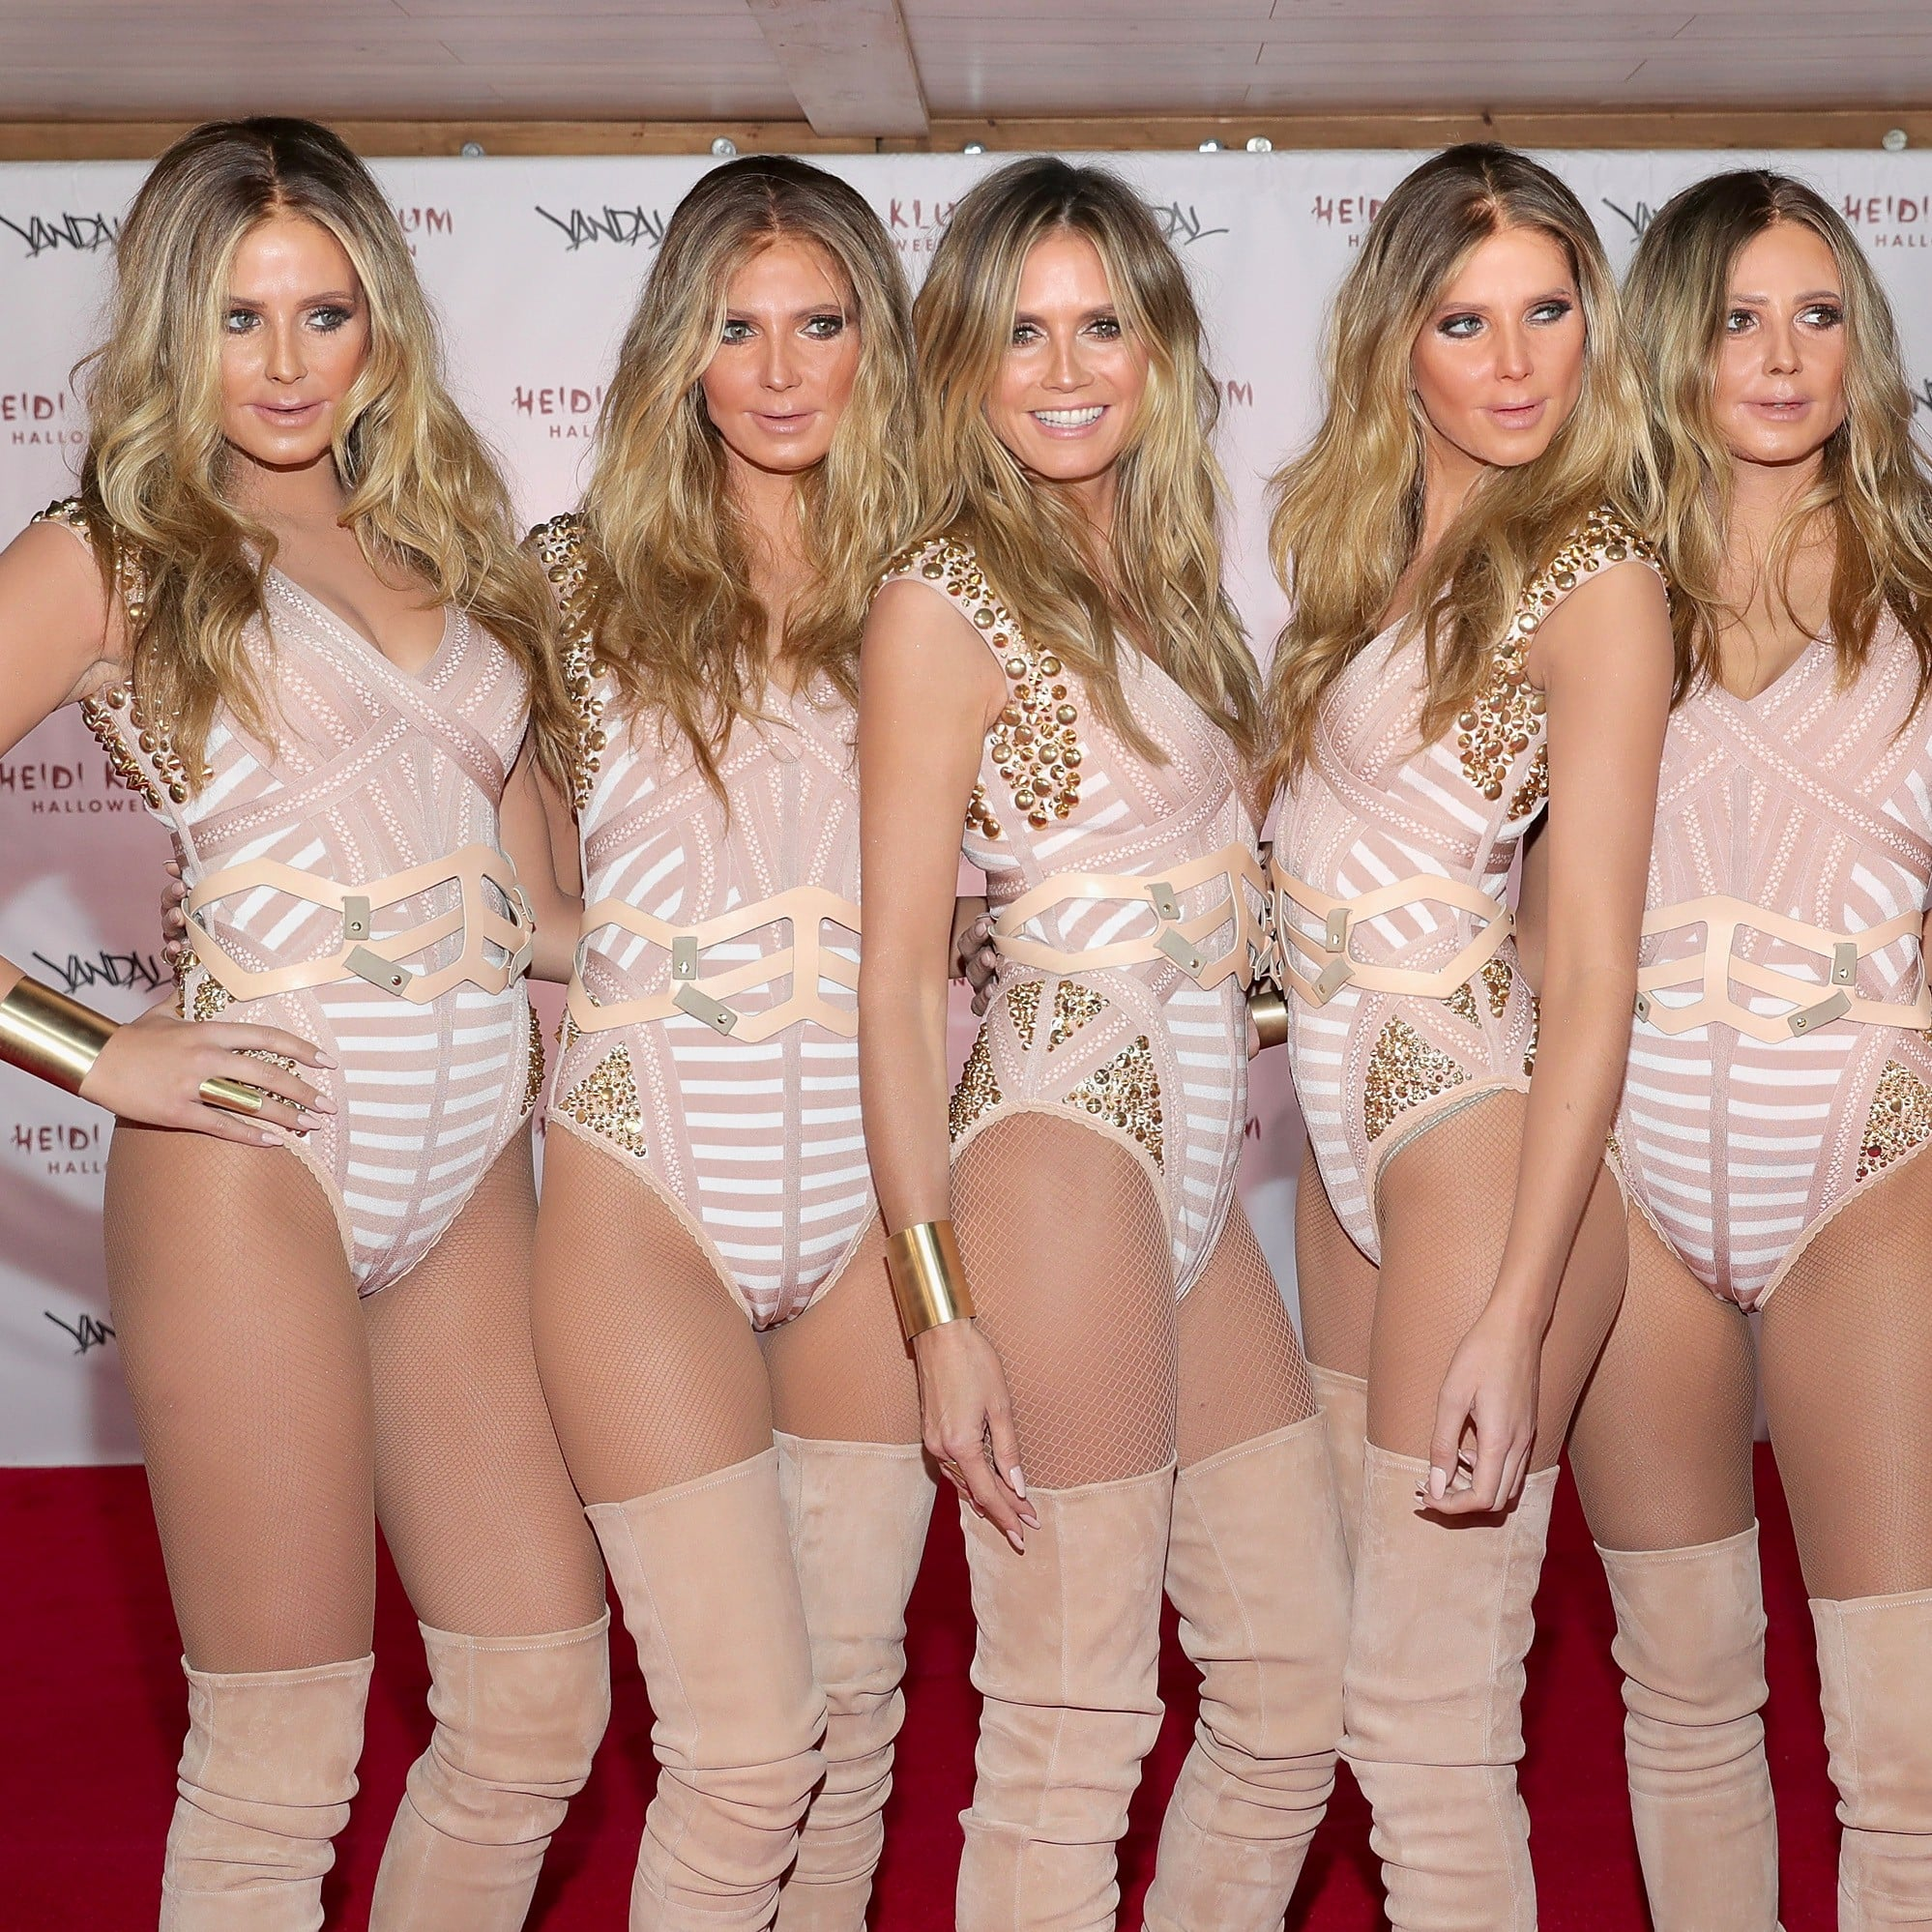 Can You Guess Heidi Klum's Next Halloween Costume from ThisPic foto